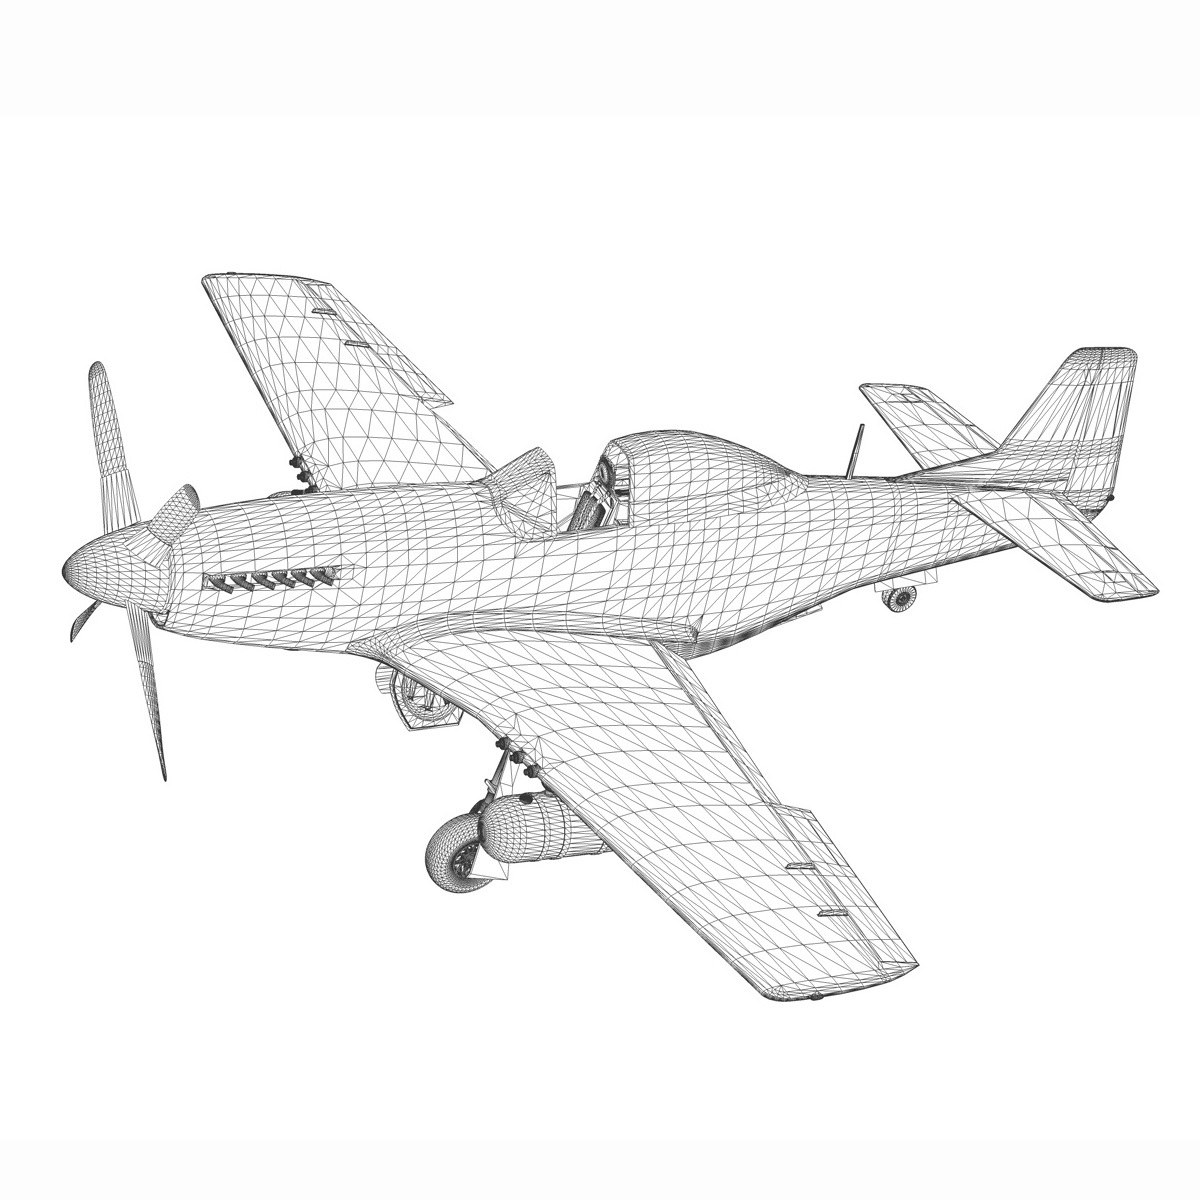 north american p-51d – cv-g 3d model 3ds fbx c4d lwo obj 188575